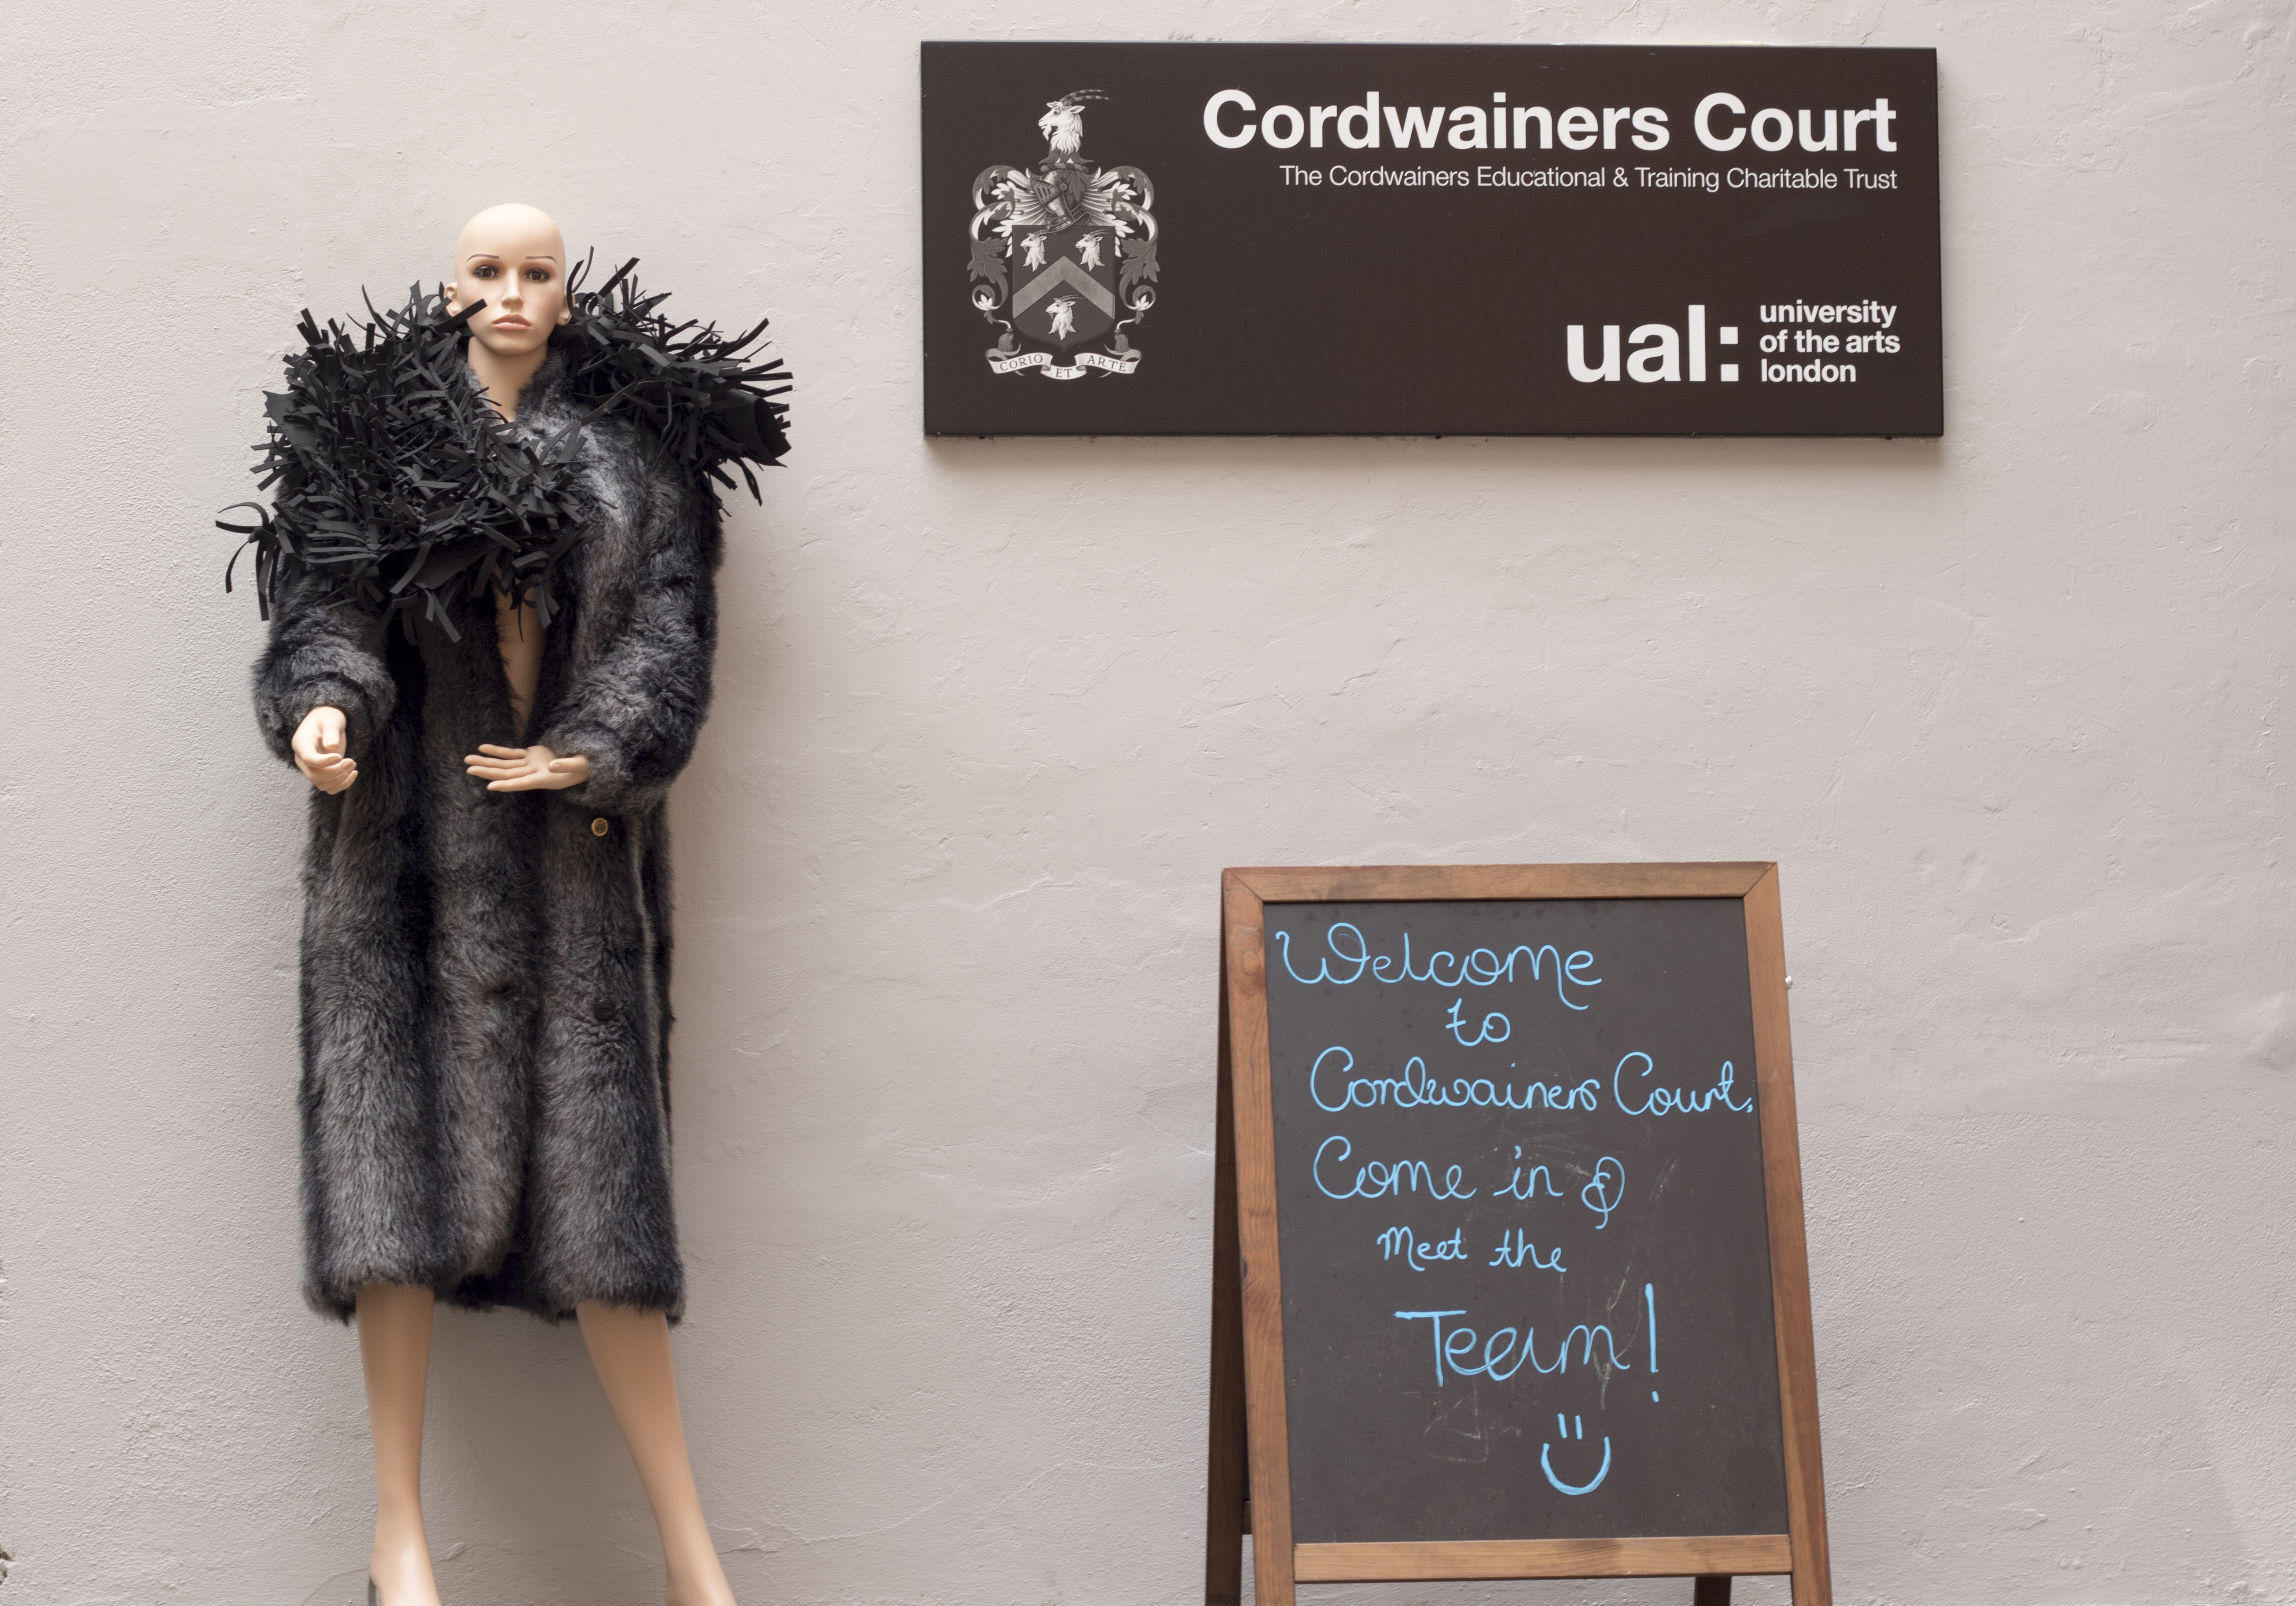 Cordwainers Court Ual